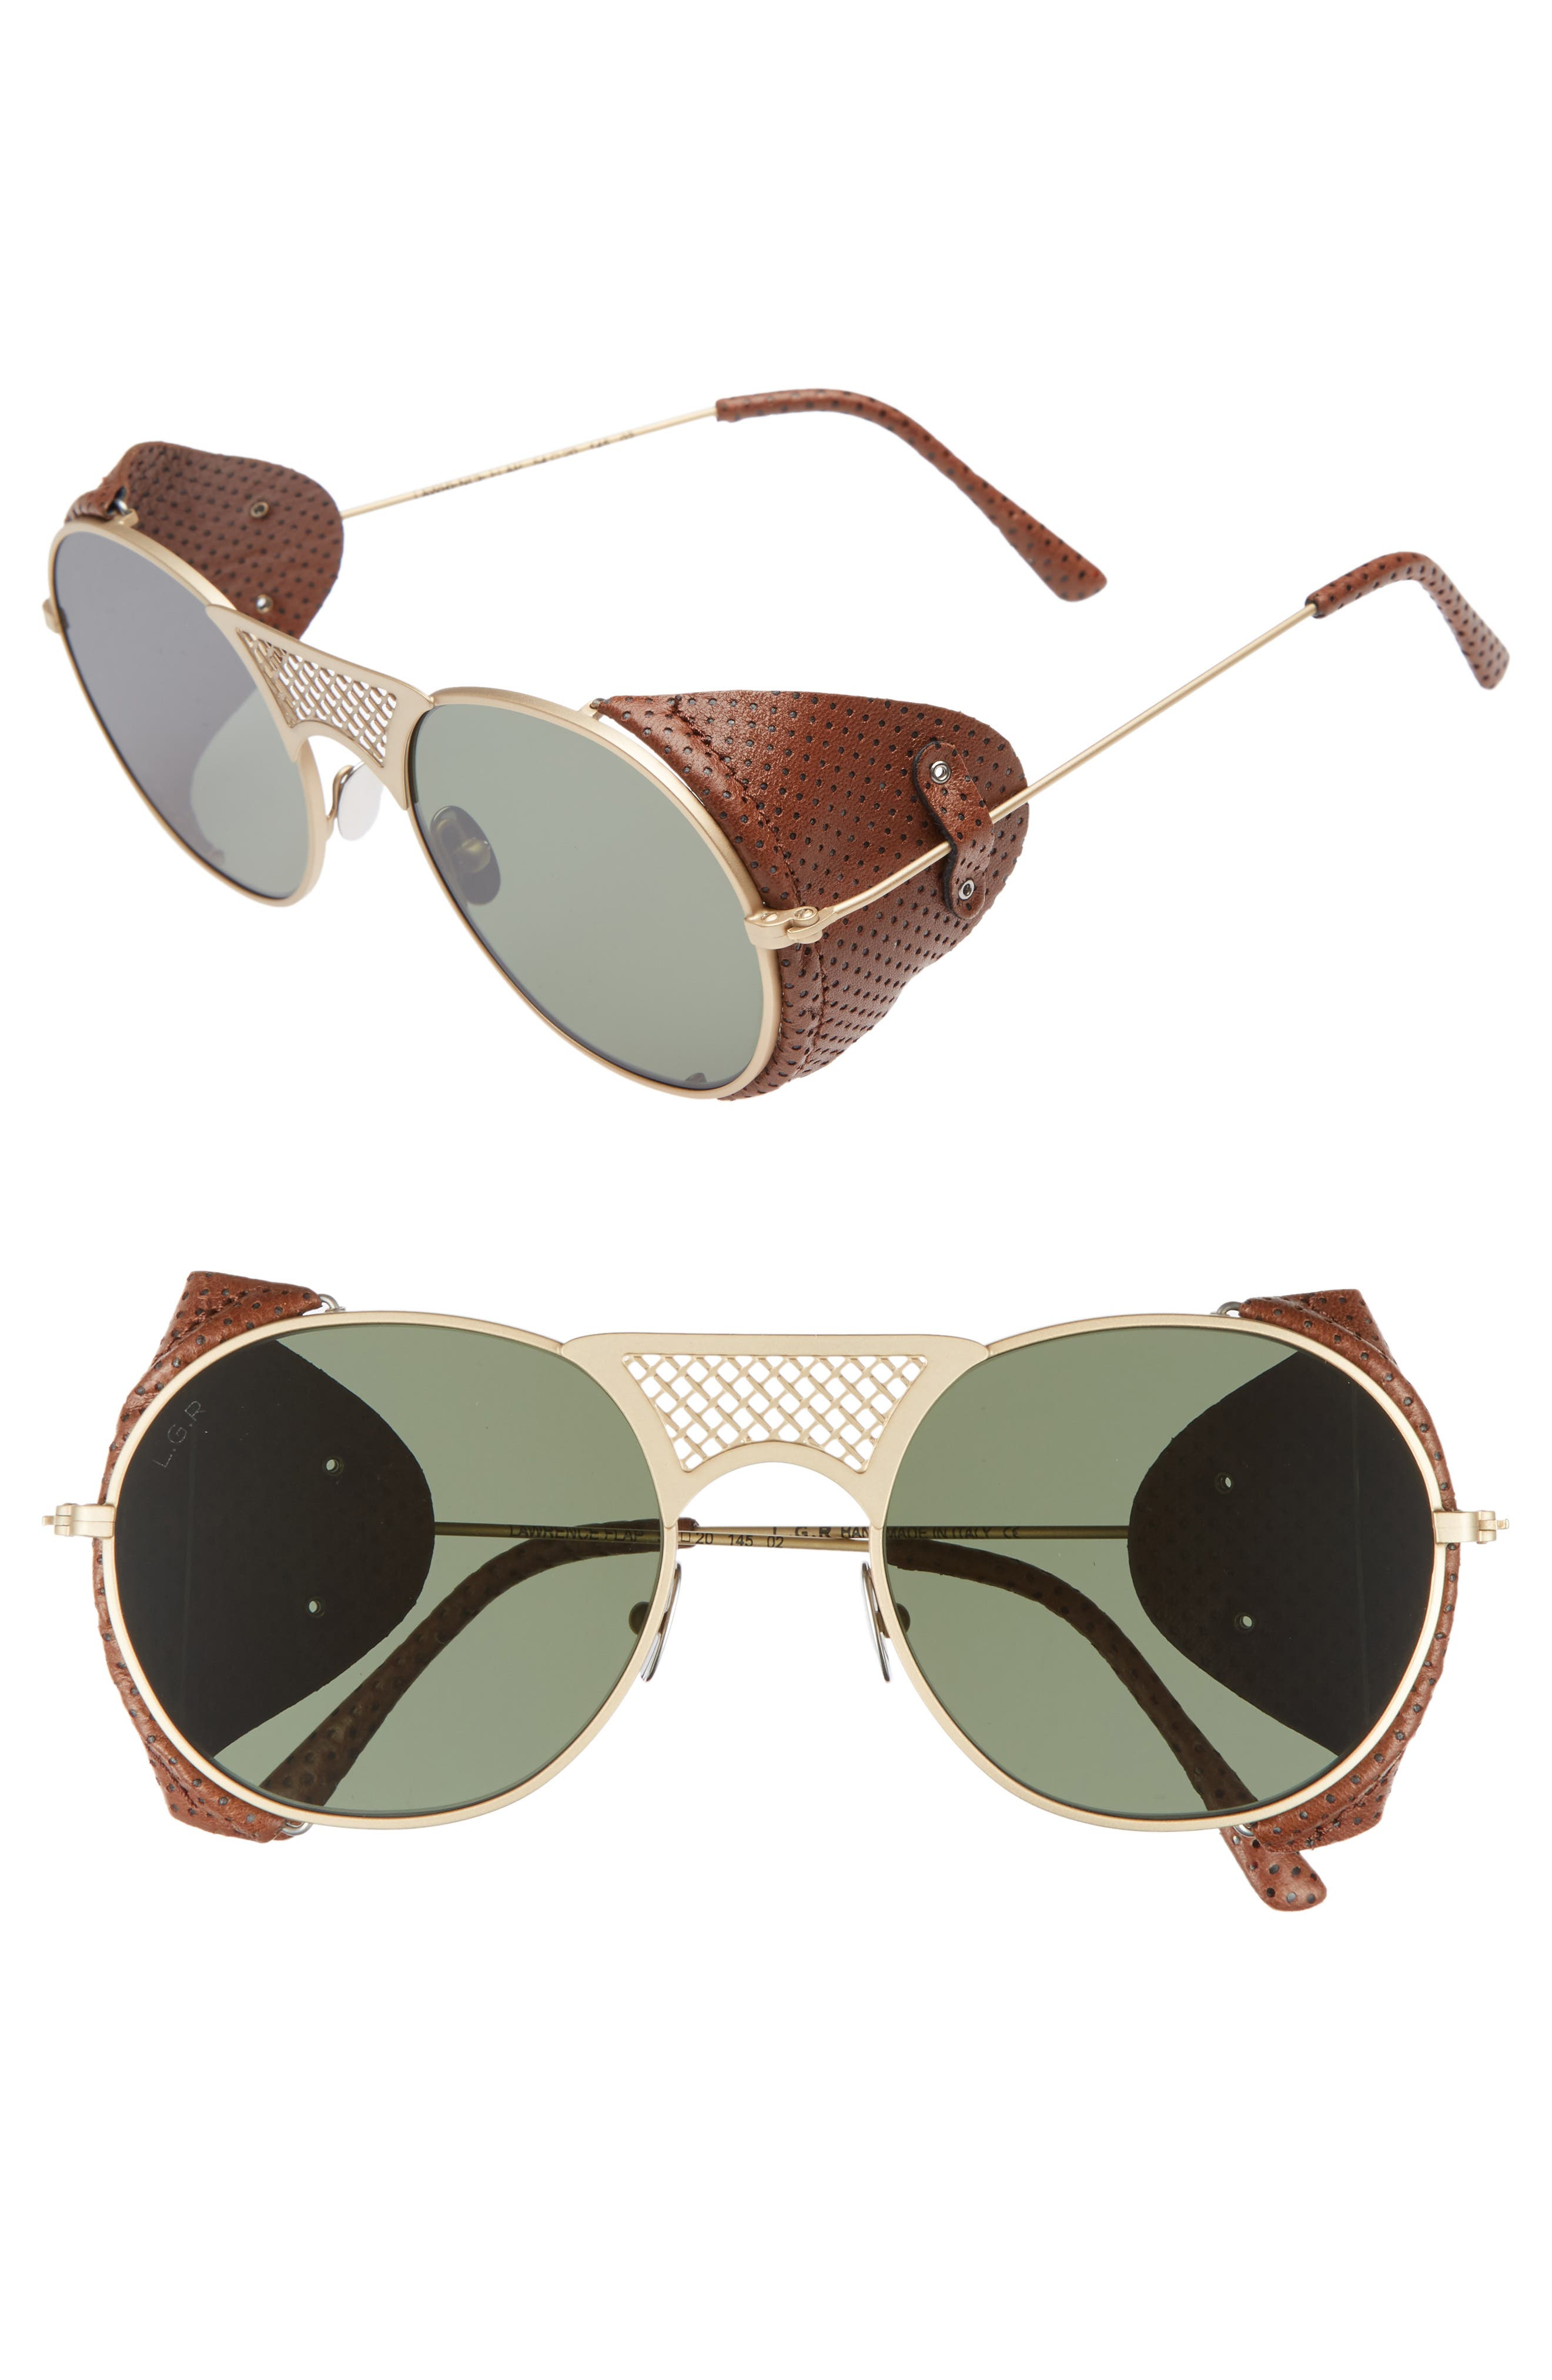 L.G.R LAWRENCE 54MM SUNGLASSES - GOLD MATTE/ BROWN/ GREEN